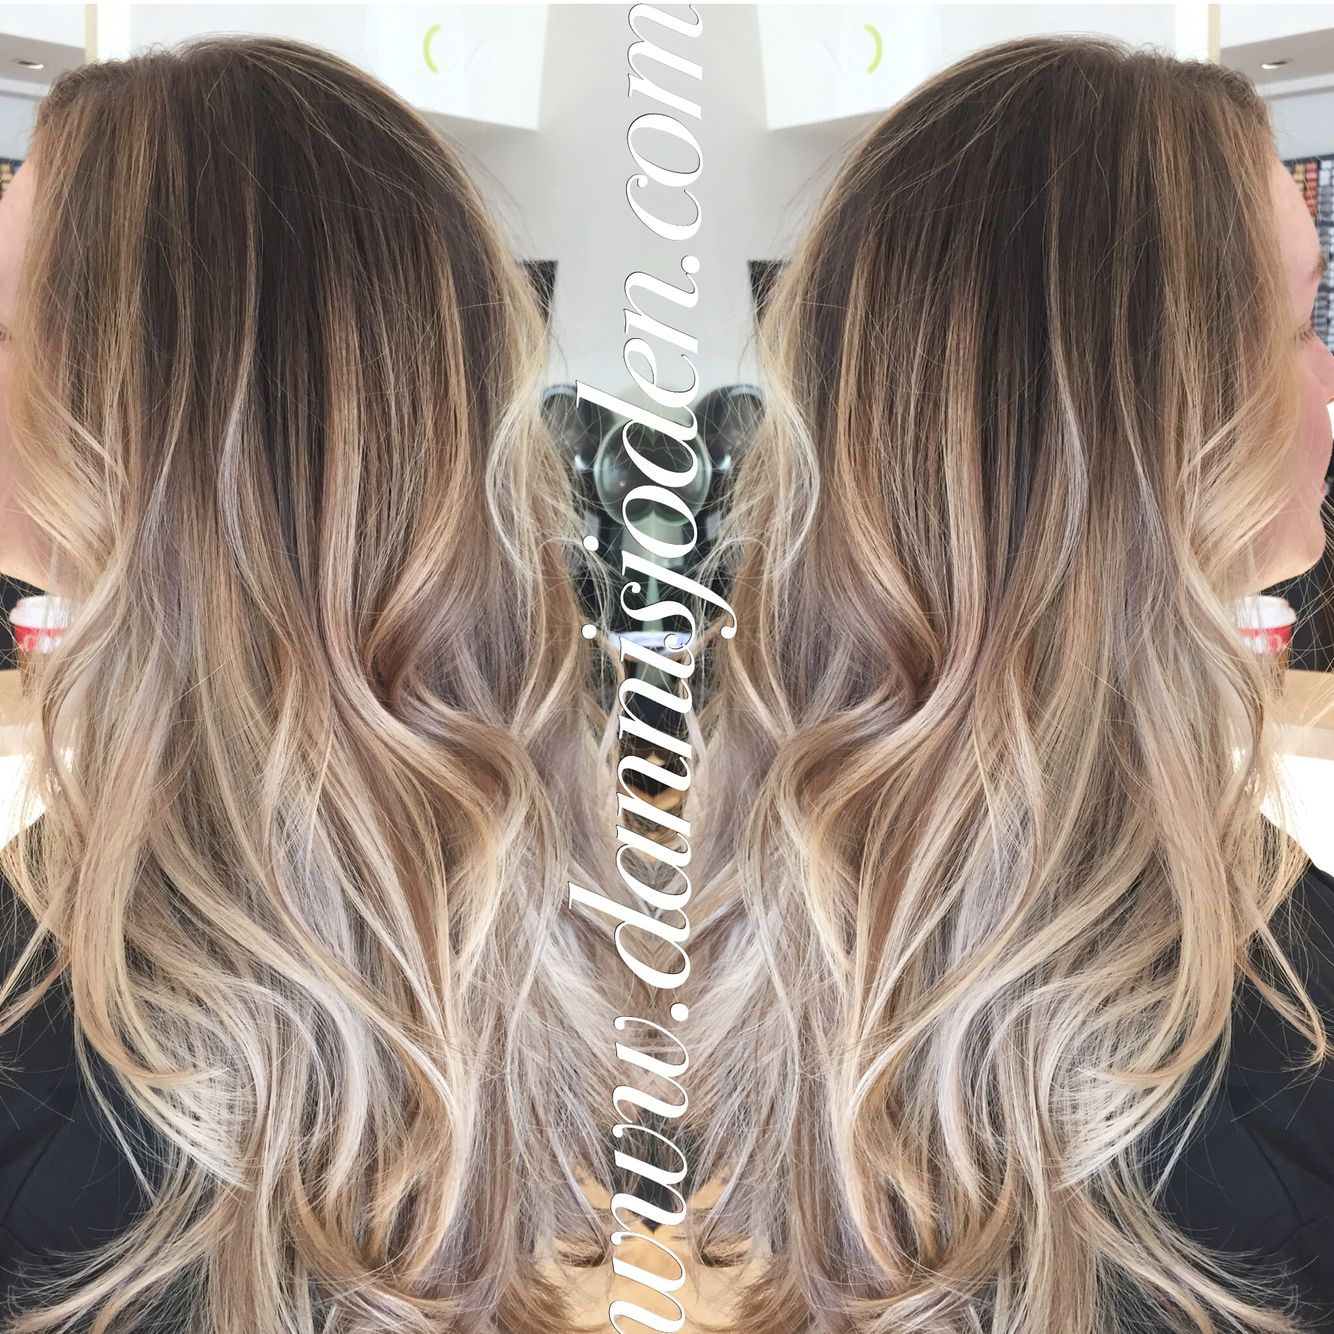 Neutral blonde balayage ombré with a long layered haircut  beach waves! Hair by Danni